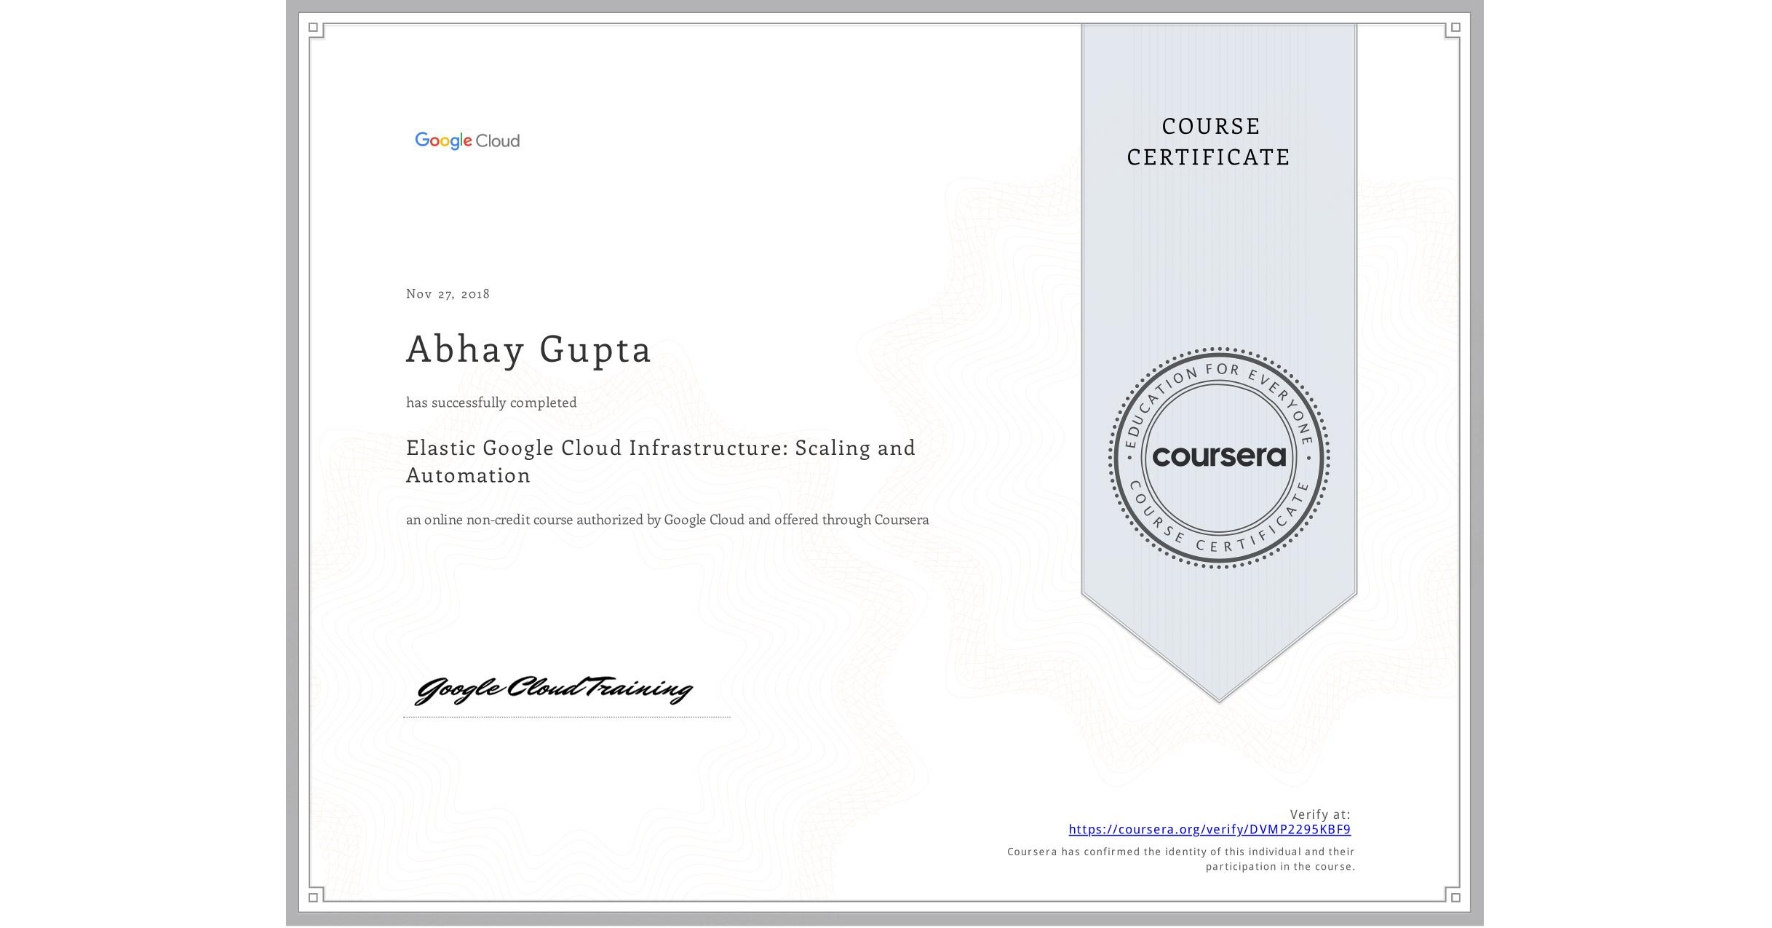 View certificate for Abhay Gupta, Elastic Google Cloud Infrastructure: Scaling and Automation, an online non-credit course authorized by Google Cloud and offered through Coursera